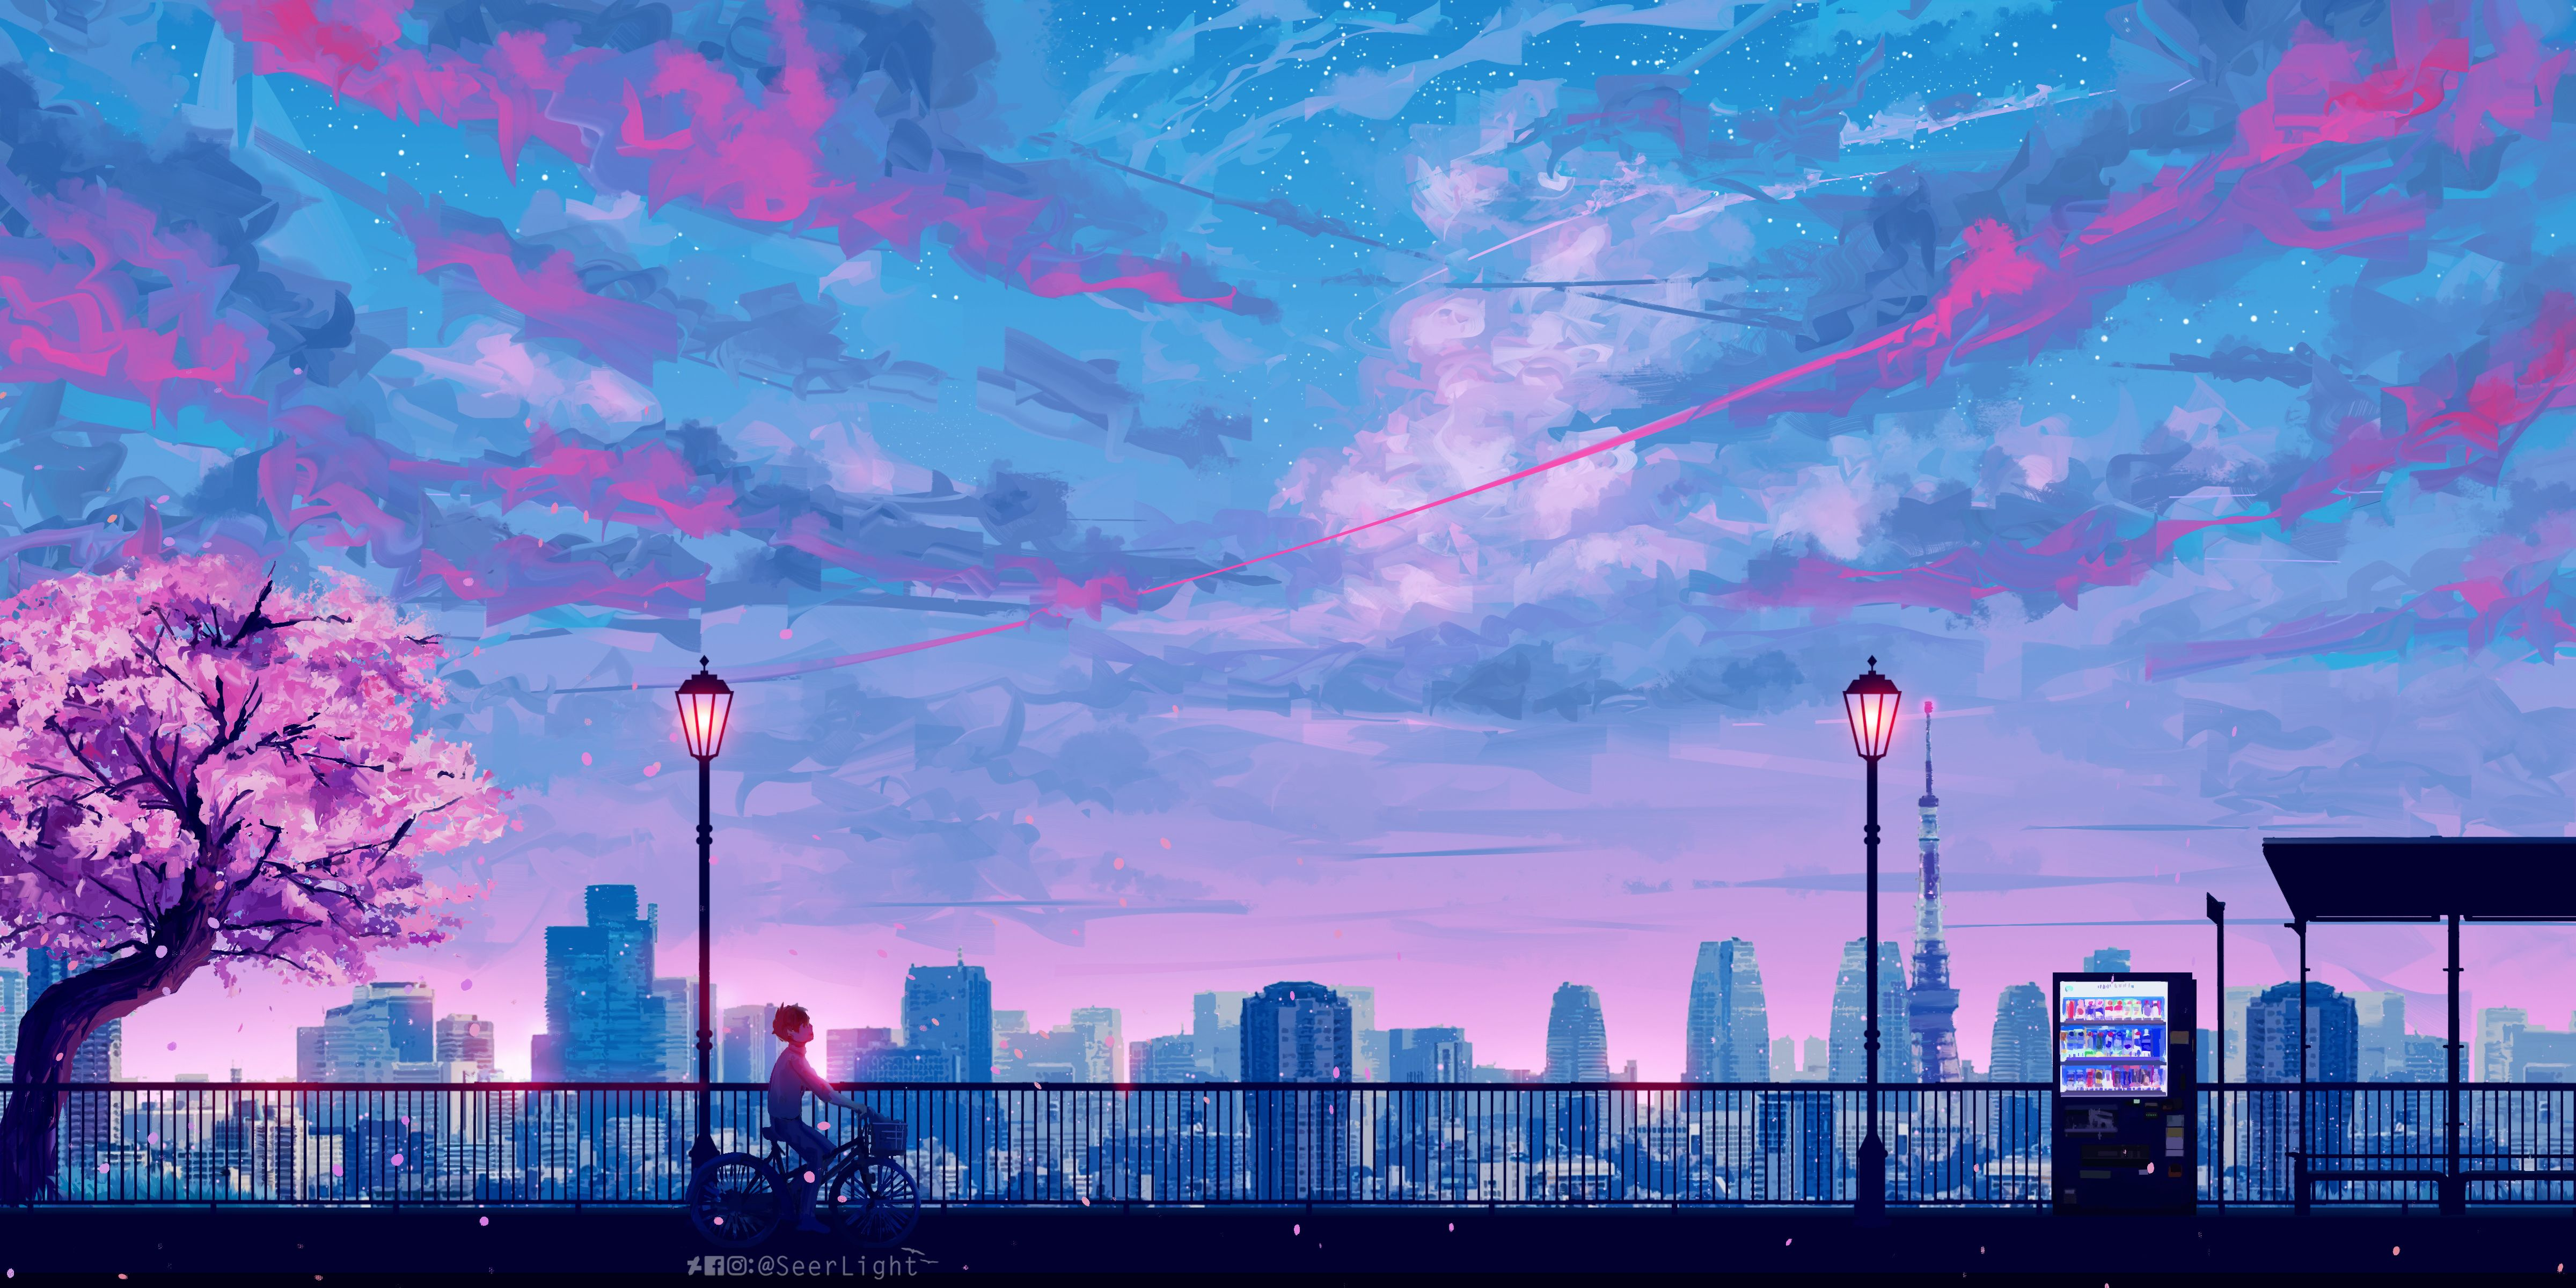 Downaload Lets Go Home Cityscape Bicycle Ride Sunset Clouds Art Wallpaper 4800x2400 Cityscape Wallpaper Scenery Wallpaper Landscape Wallpaper Anime wallpaper city sunset